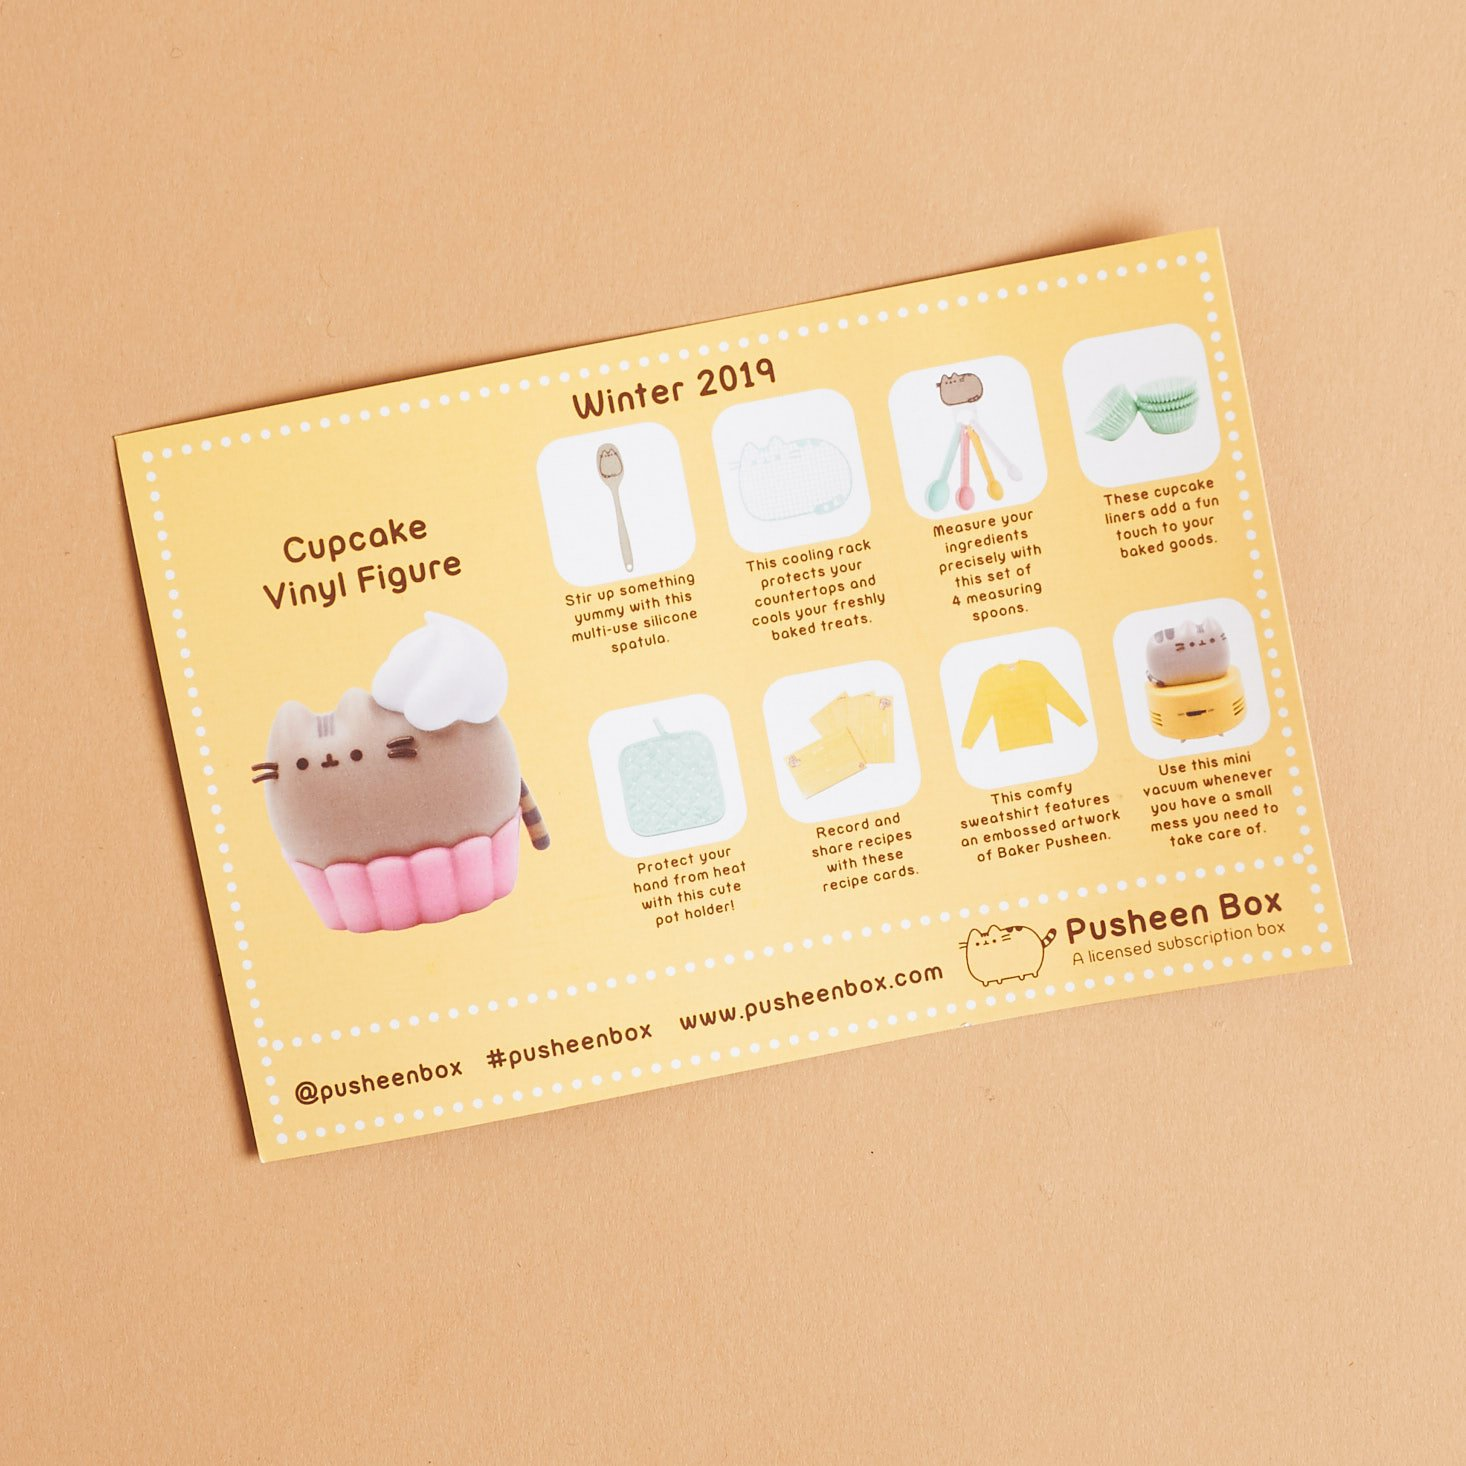 Pusheen info card listing items